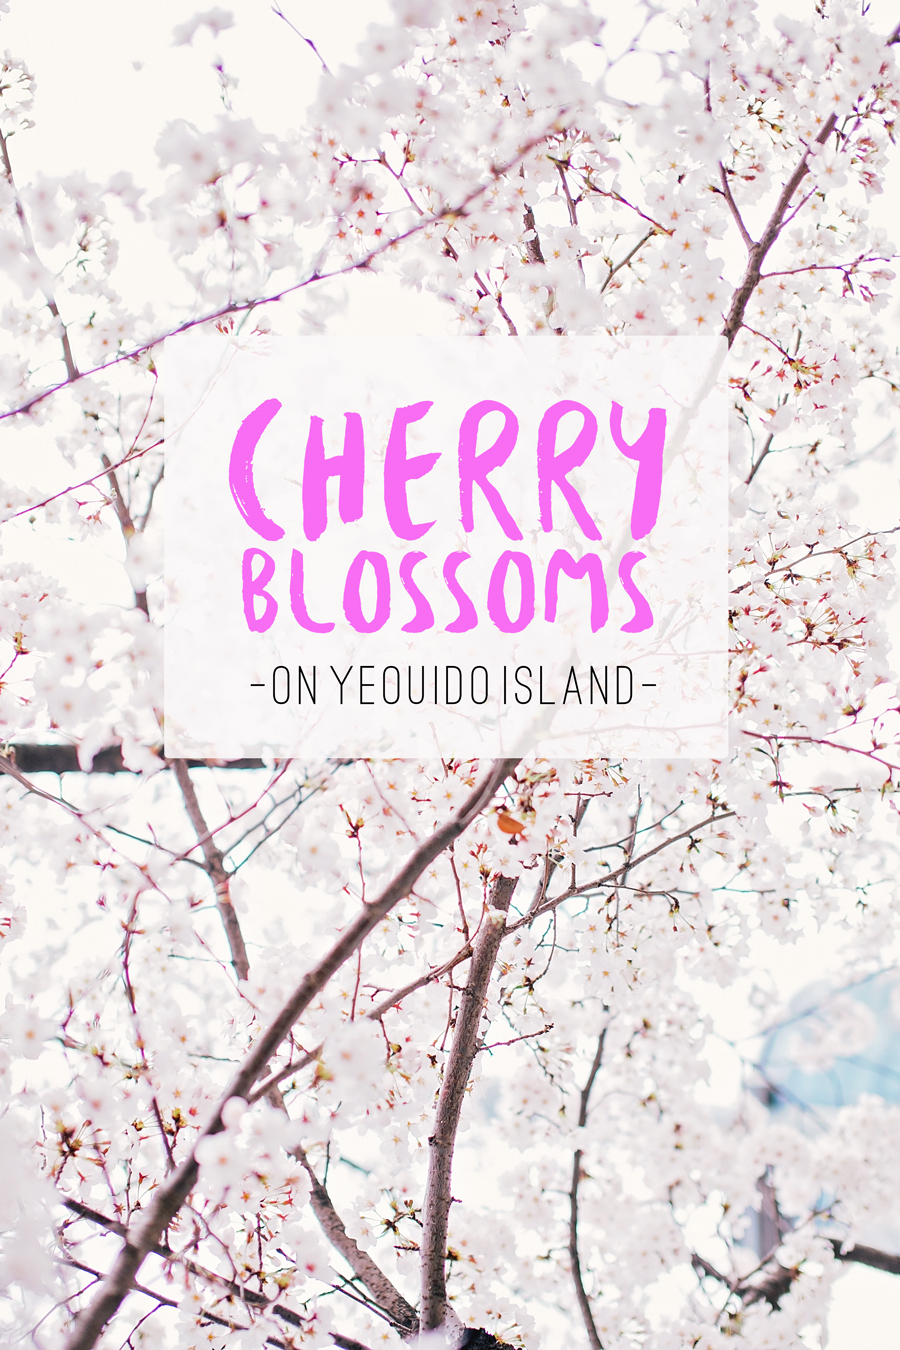 cherry blossoms yeouido island seoul south korea